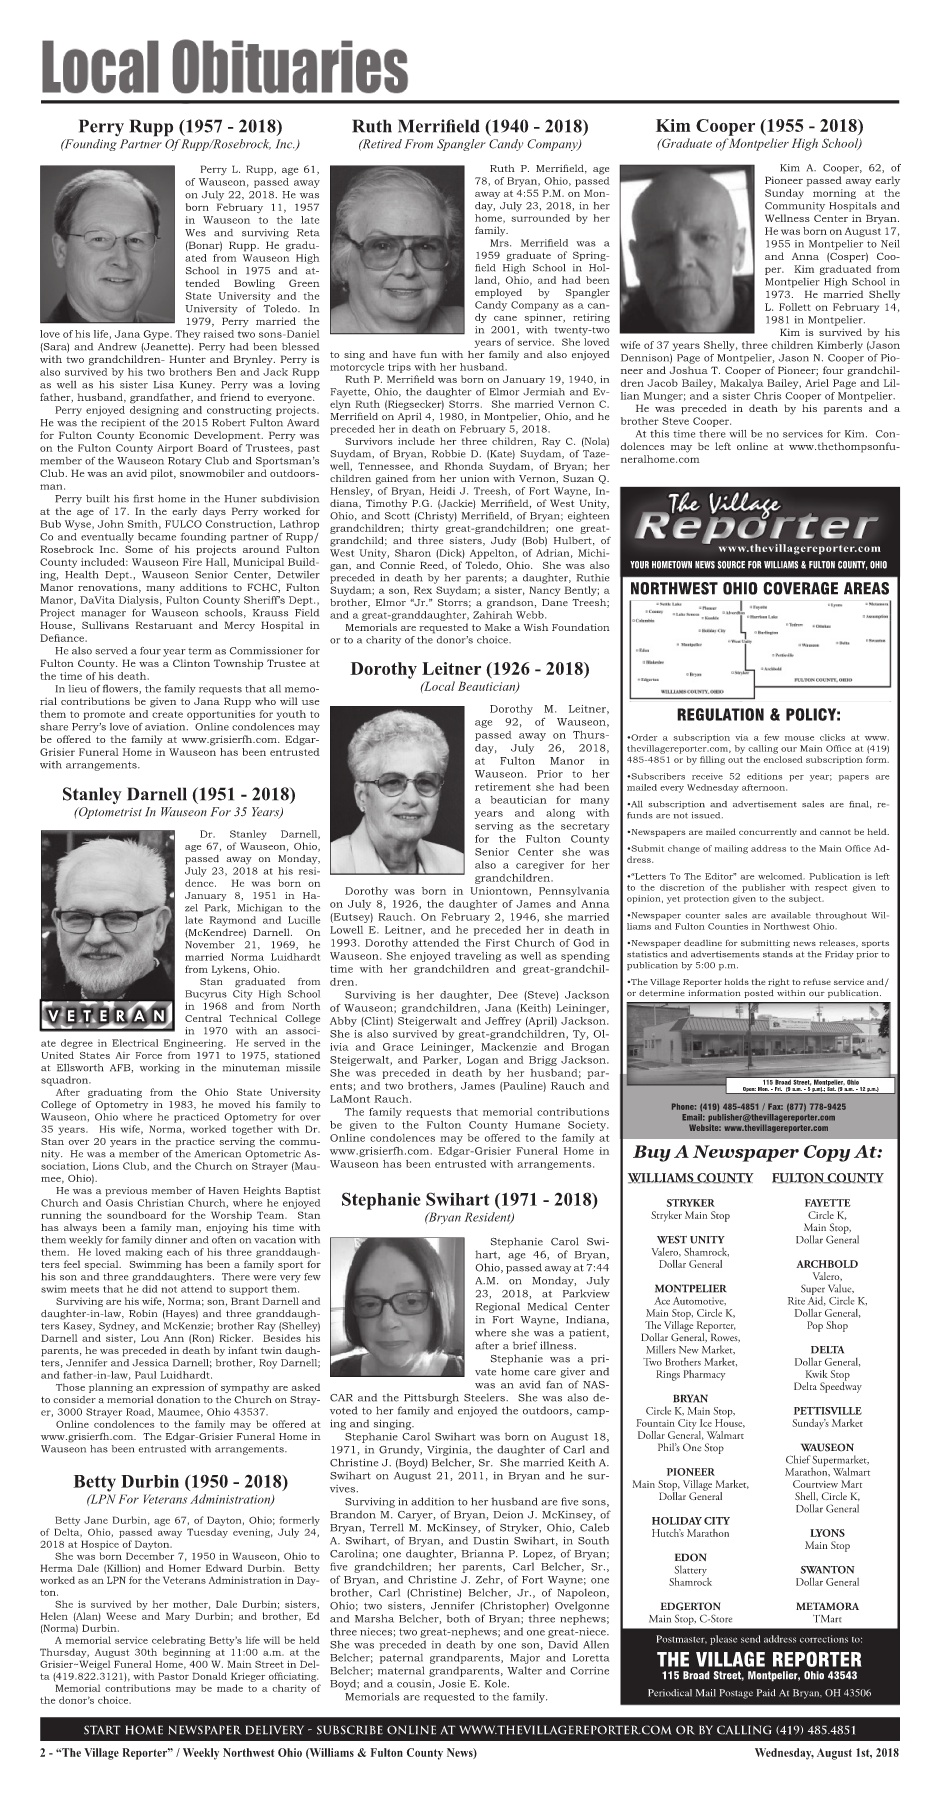 The Village Reporter - August 1st, 2018 Pages 1 - 46 - Text